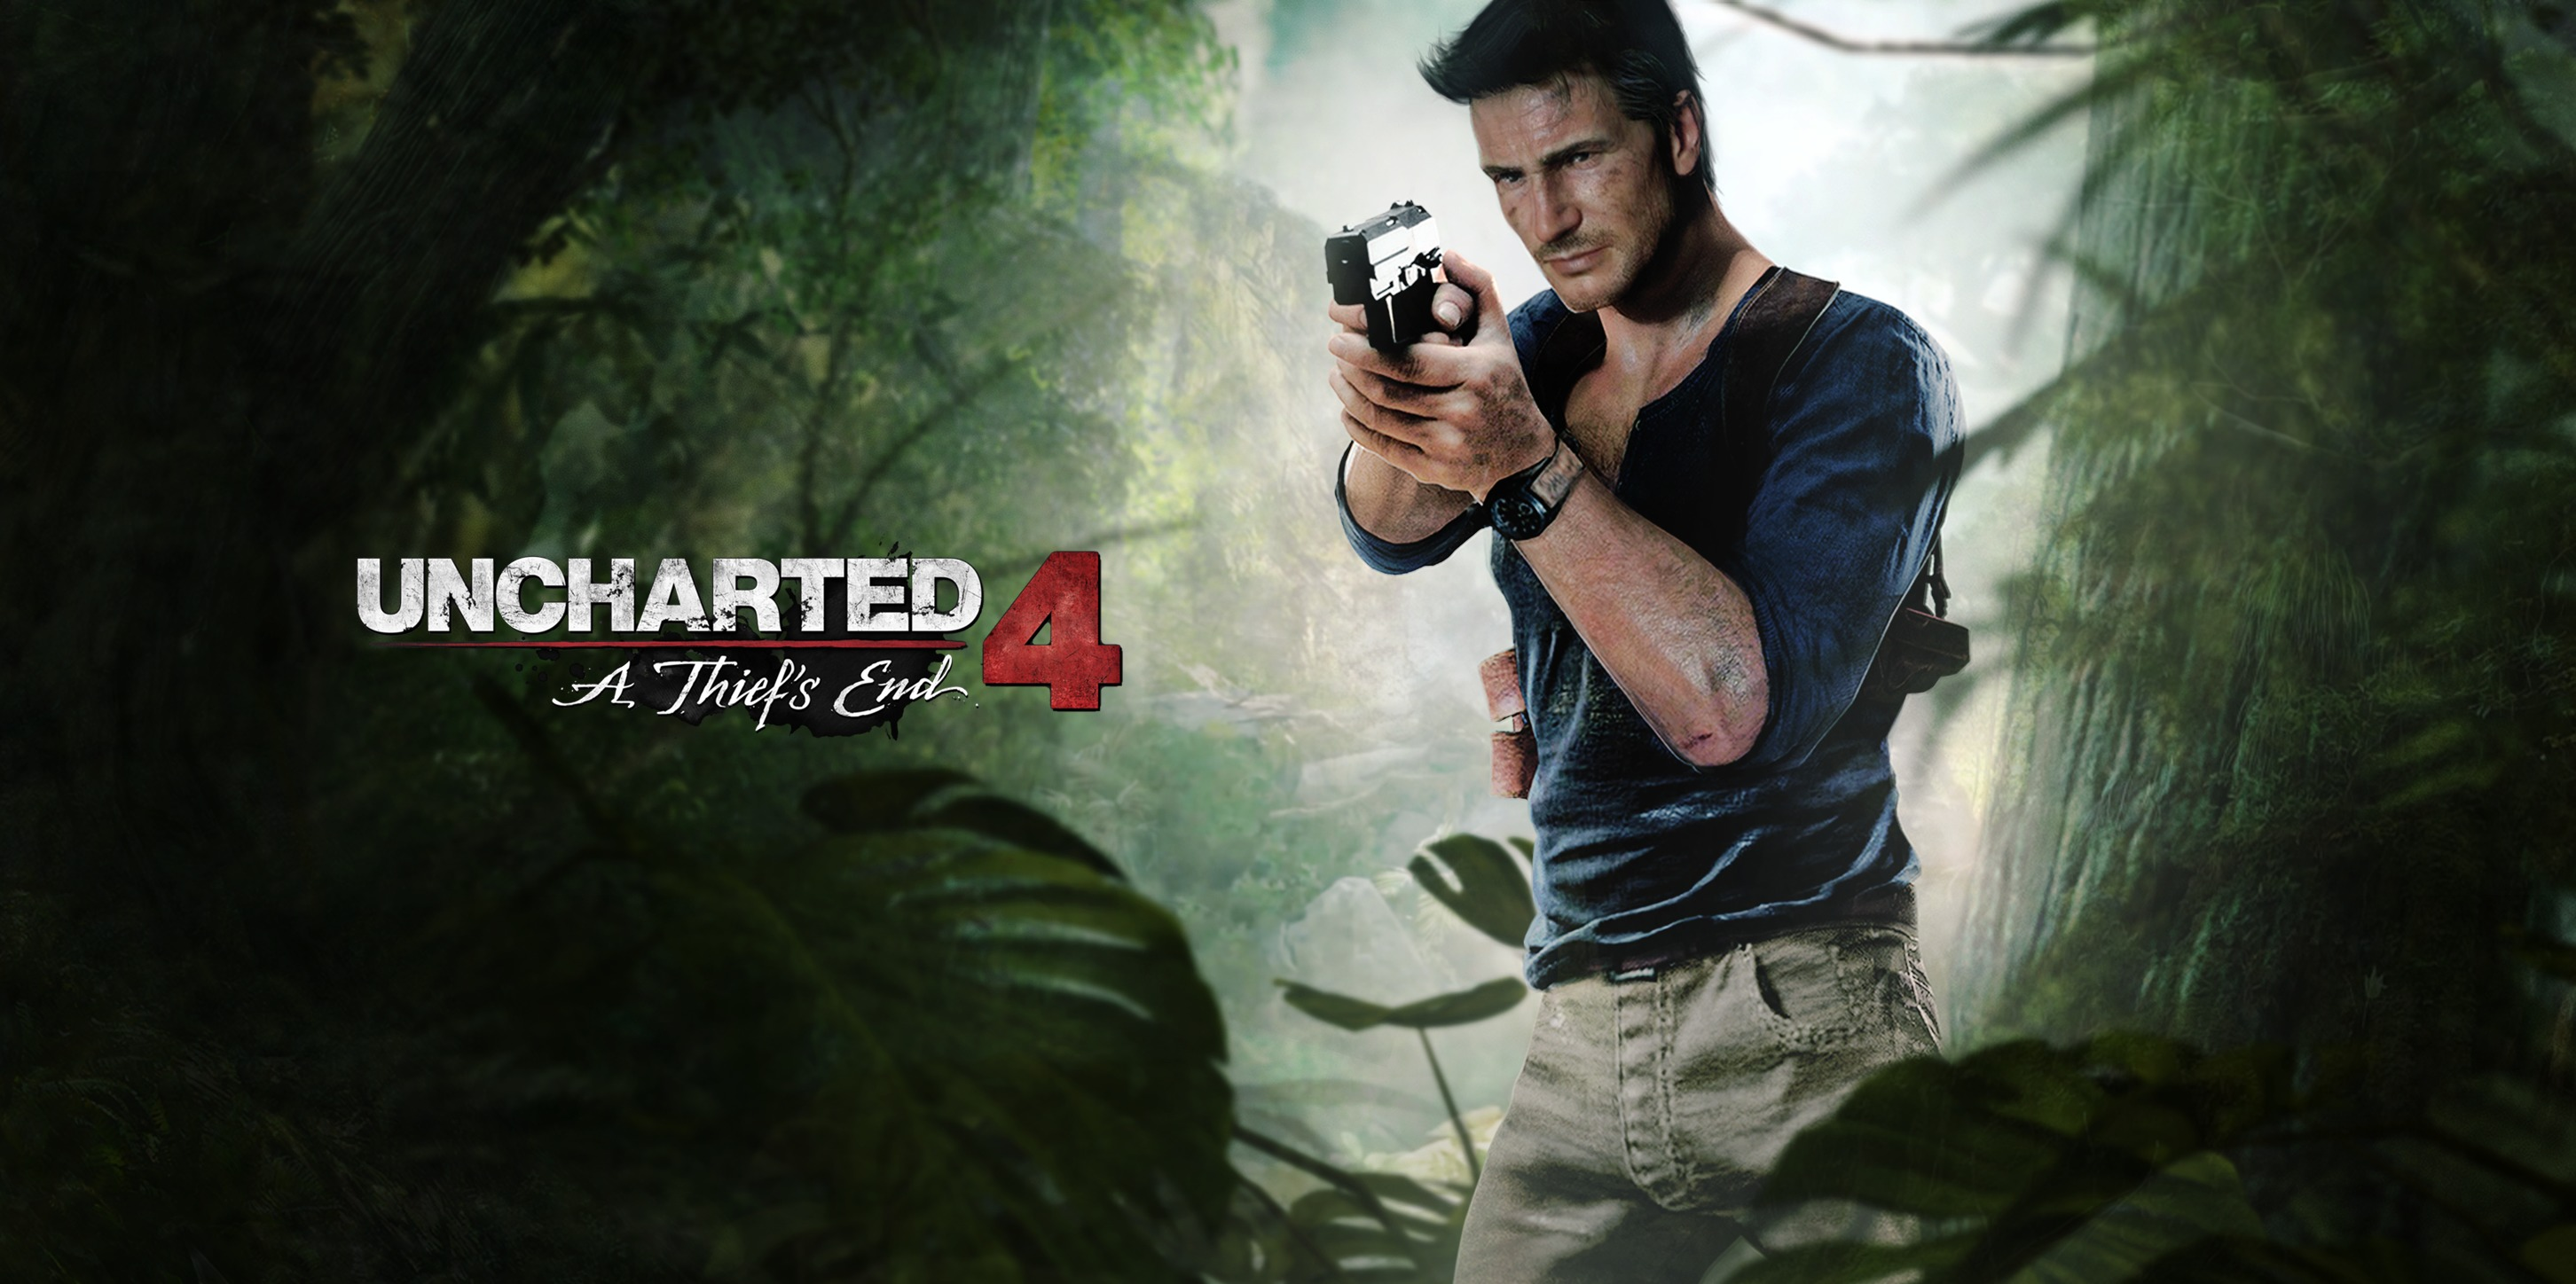 Uncharted 4: A Thief'-s End Wallpapers HD - InspirationSeek.com